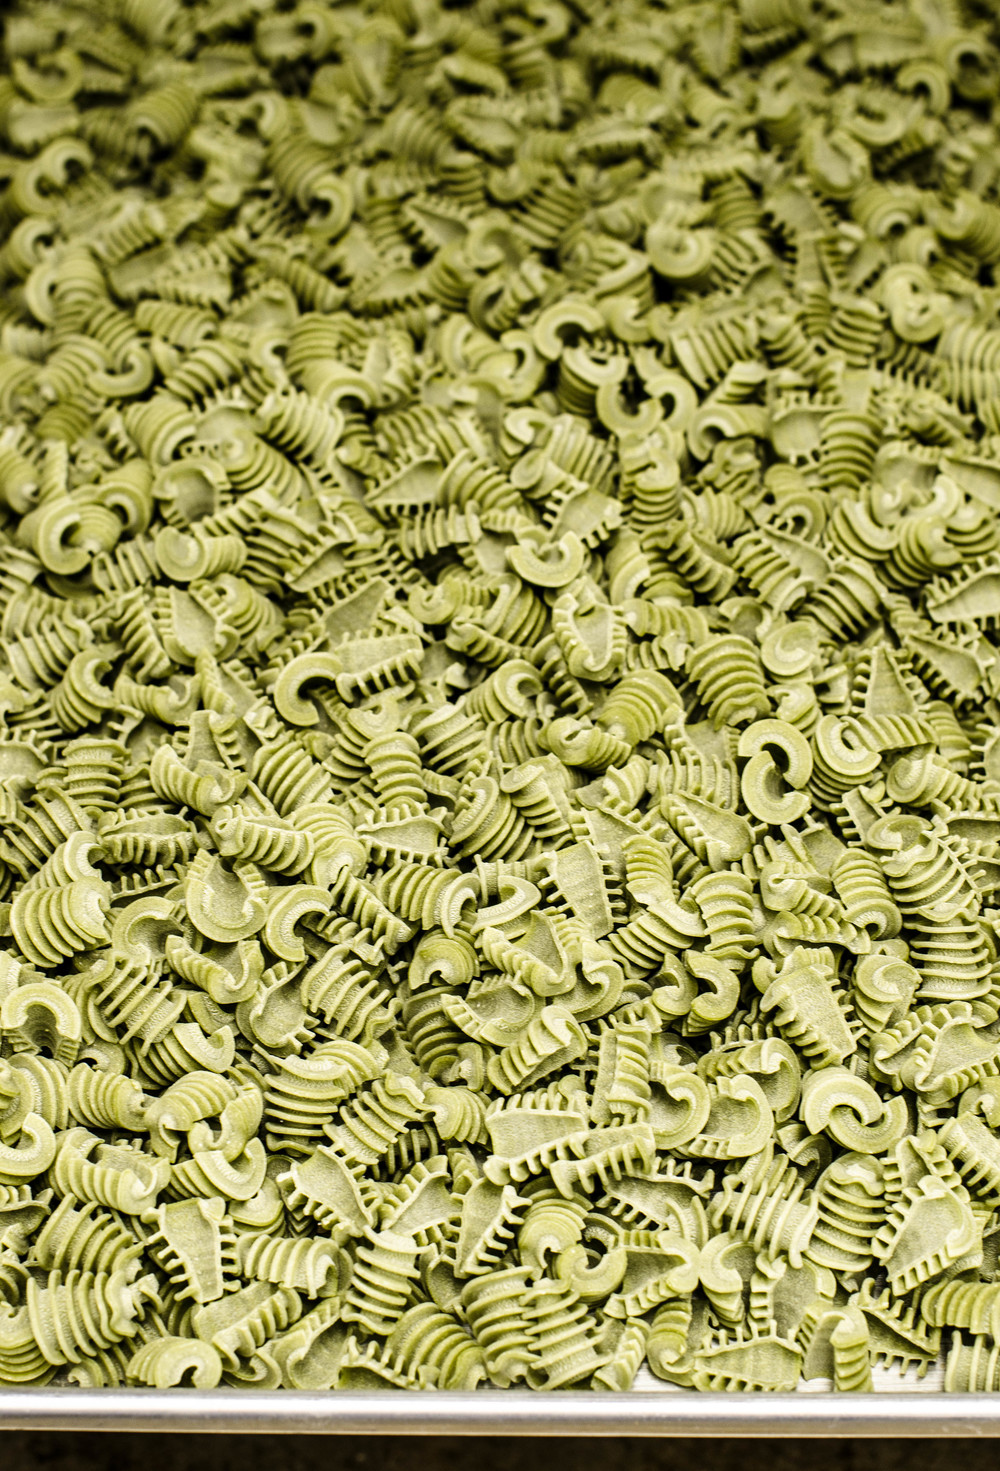 ROSE & IVY JOURNAL SFOGLINI PASTA